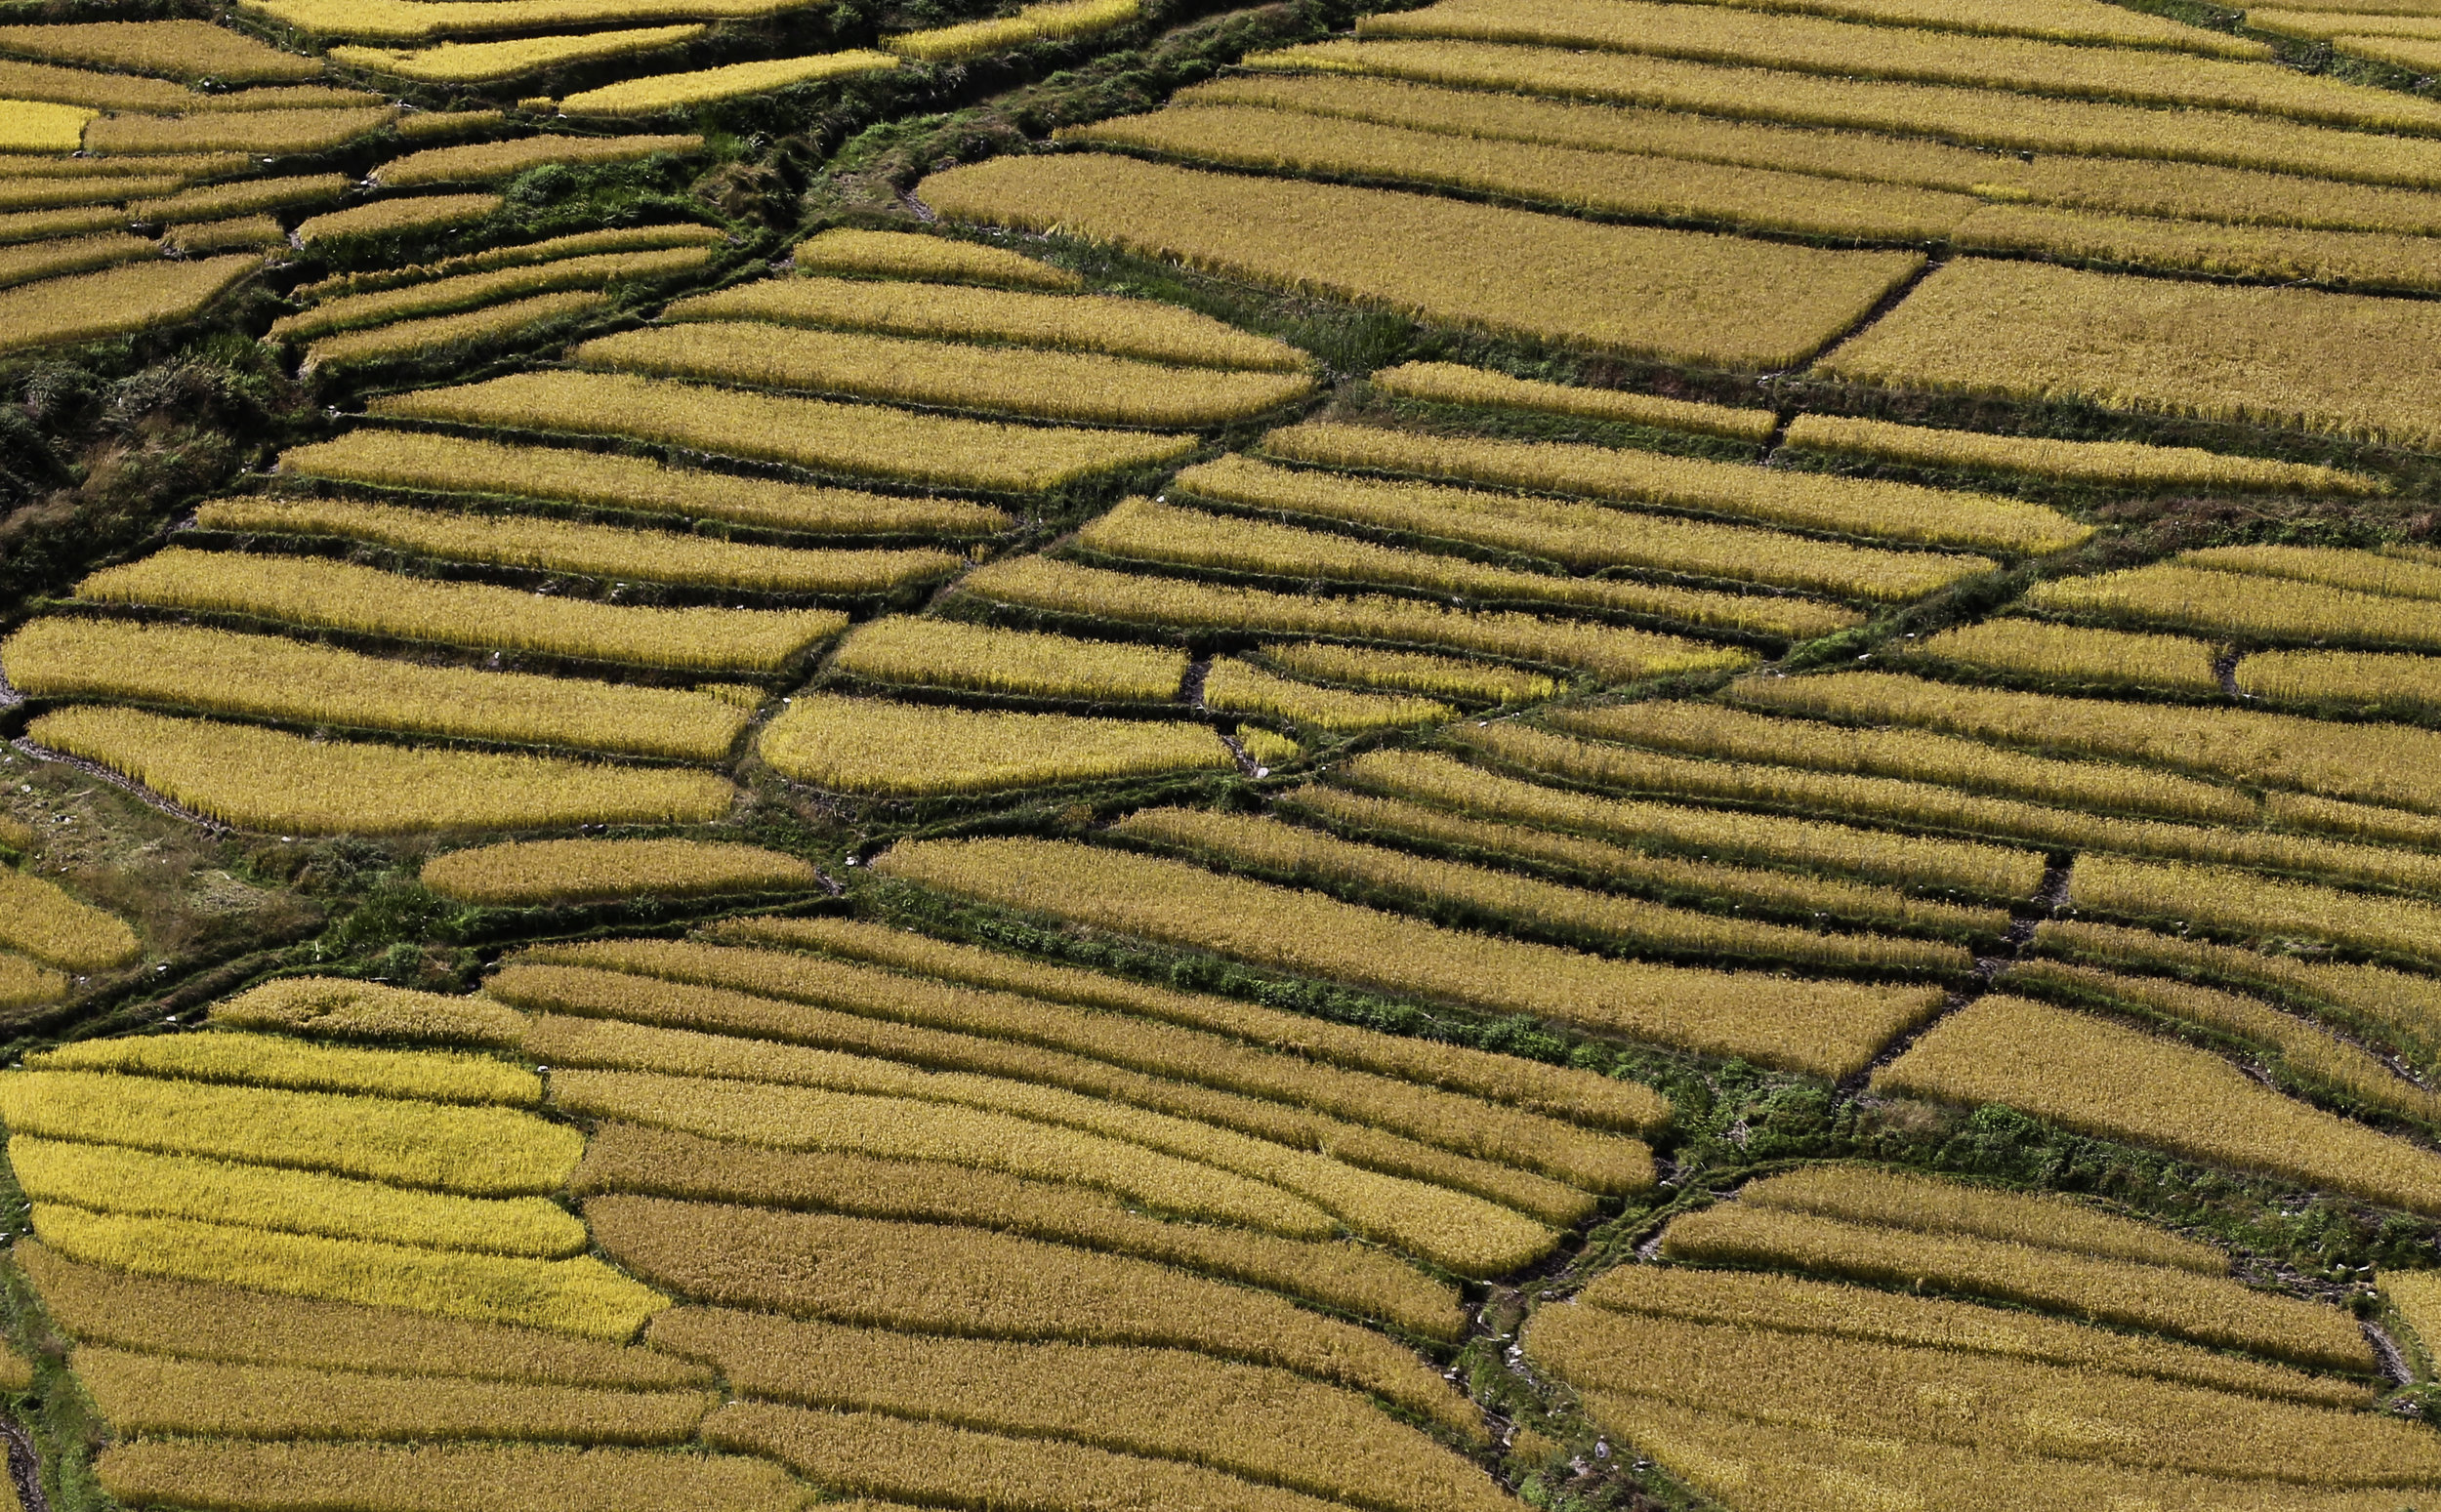 Autumn in Bhutan - Rice field